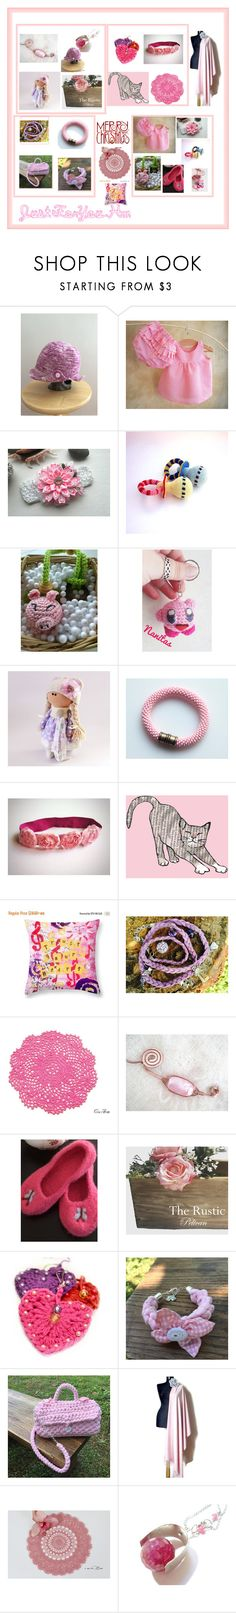 """Merry Christmas in.....pink!!"" by justforyouhm ❤ liked on Polyvore featuring Nintendo and Giro"